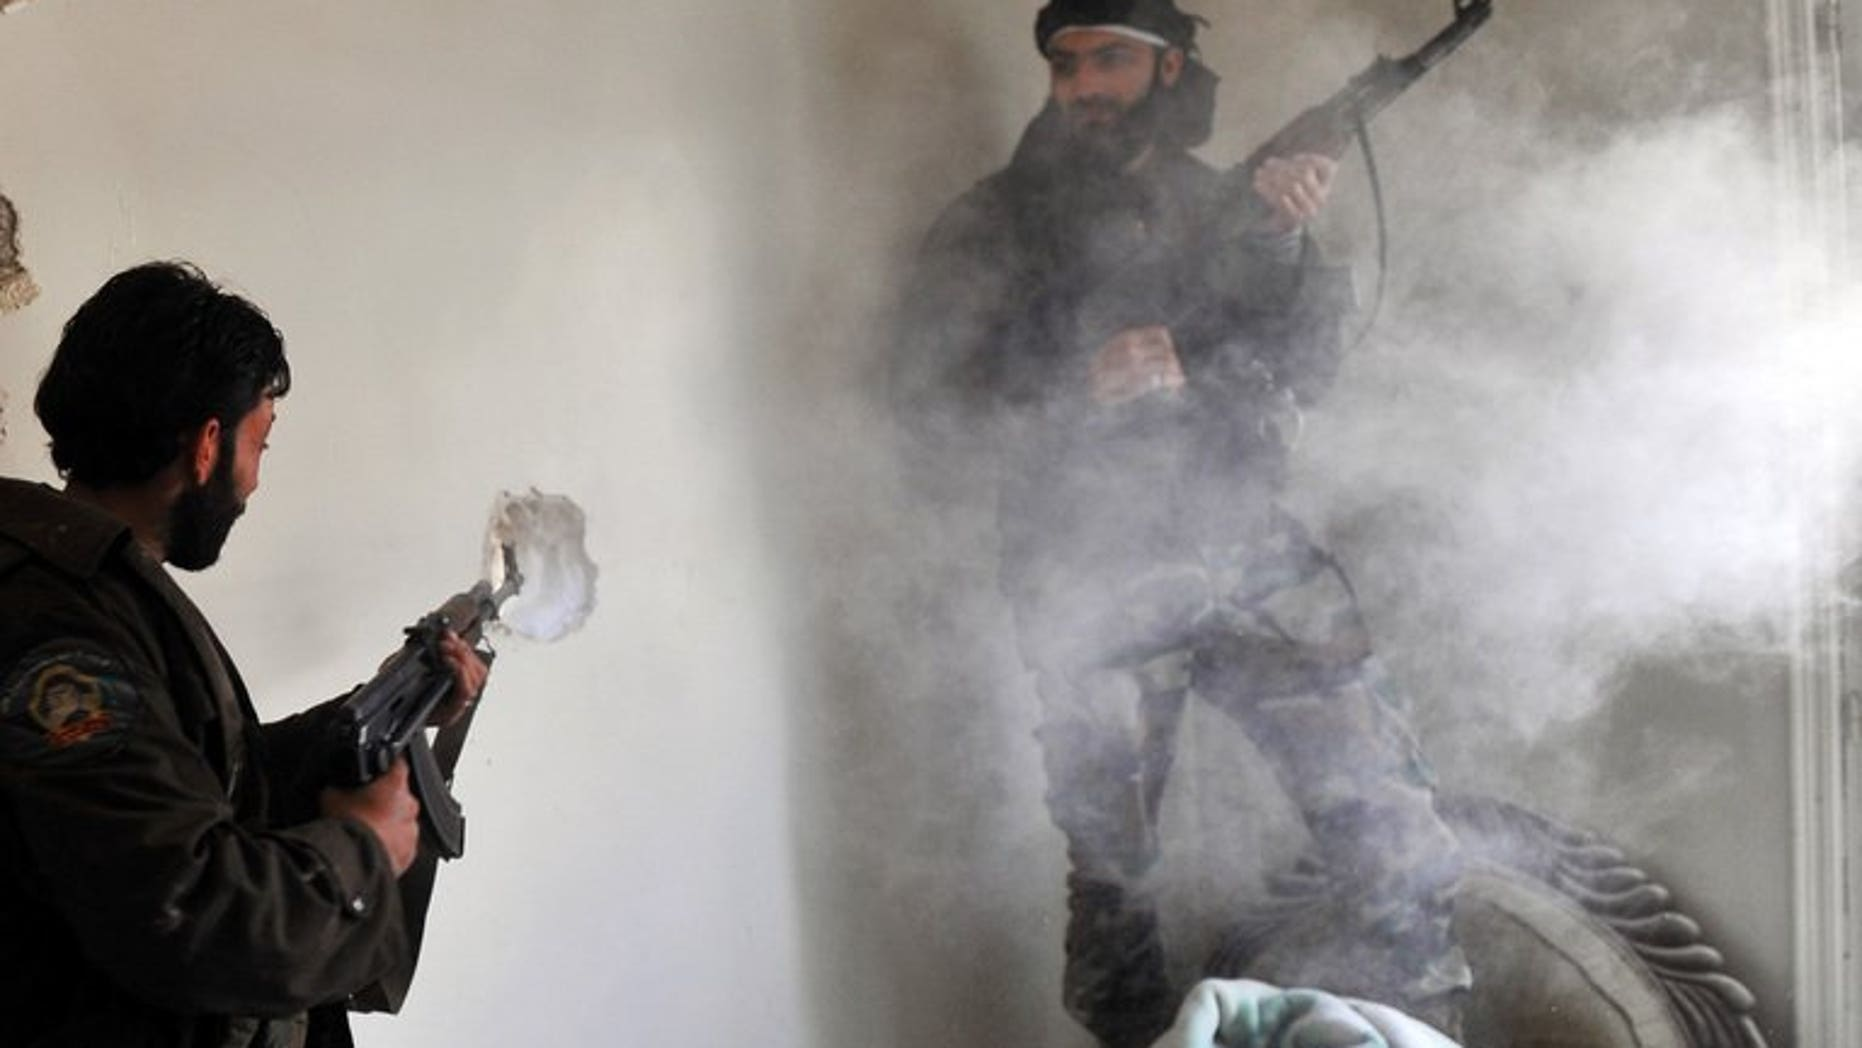 """Syrian rebels clash with pro-regime forces in the Saif al-Dawla district of Aleppo on March 23, 2013. British Foreign Secretary William Hague has said his government had taken """"no decision"""" to provide arms to Syrian rebels, ahead of a """"Friends of Syria"""" meeting expected to discuss military aid."""